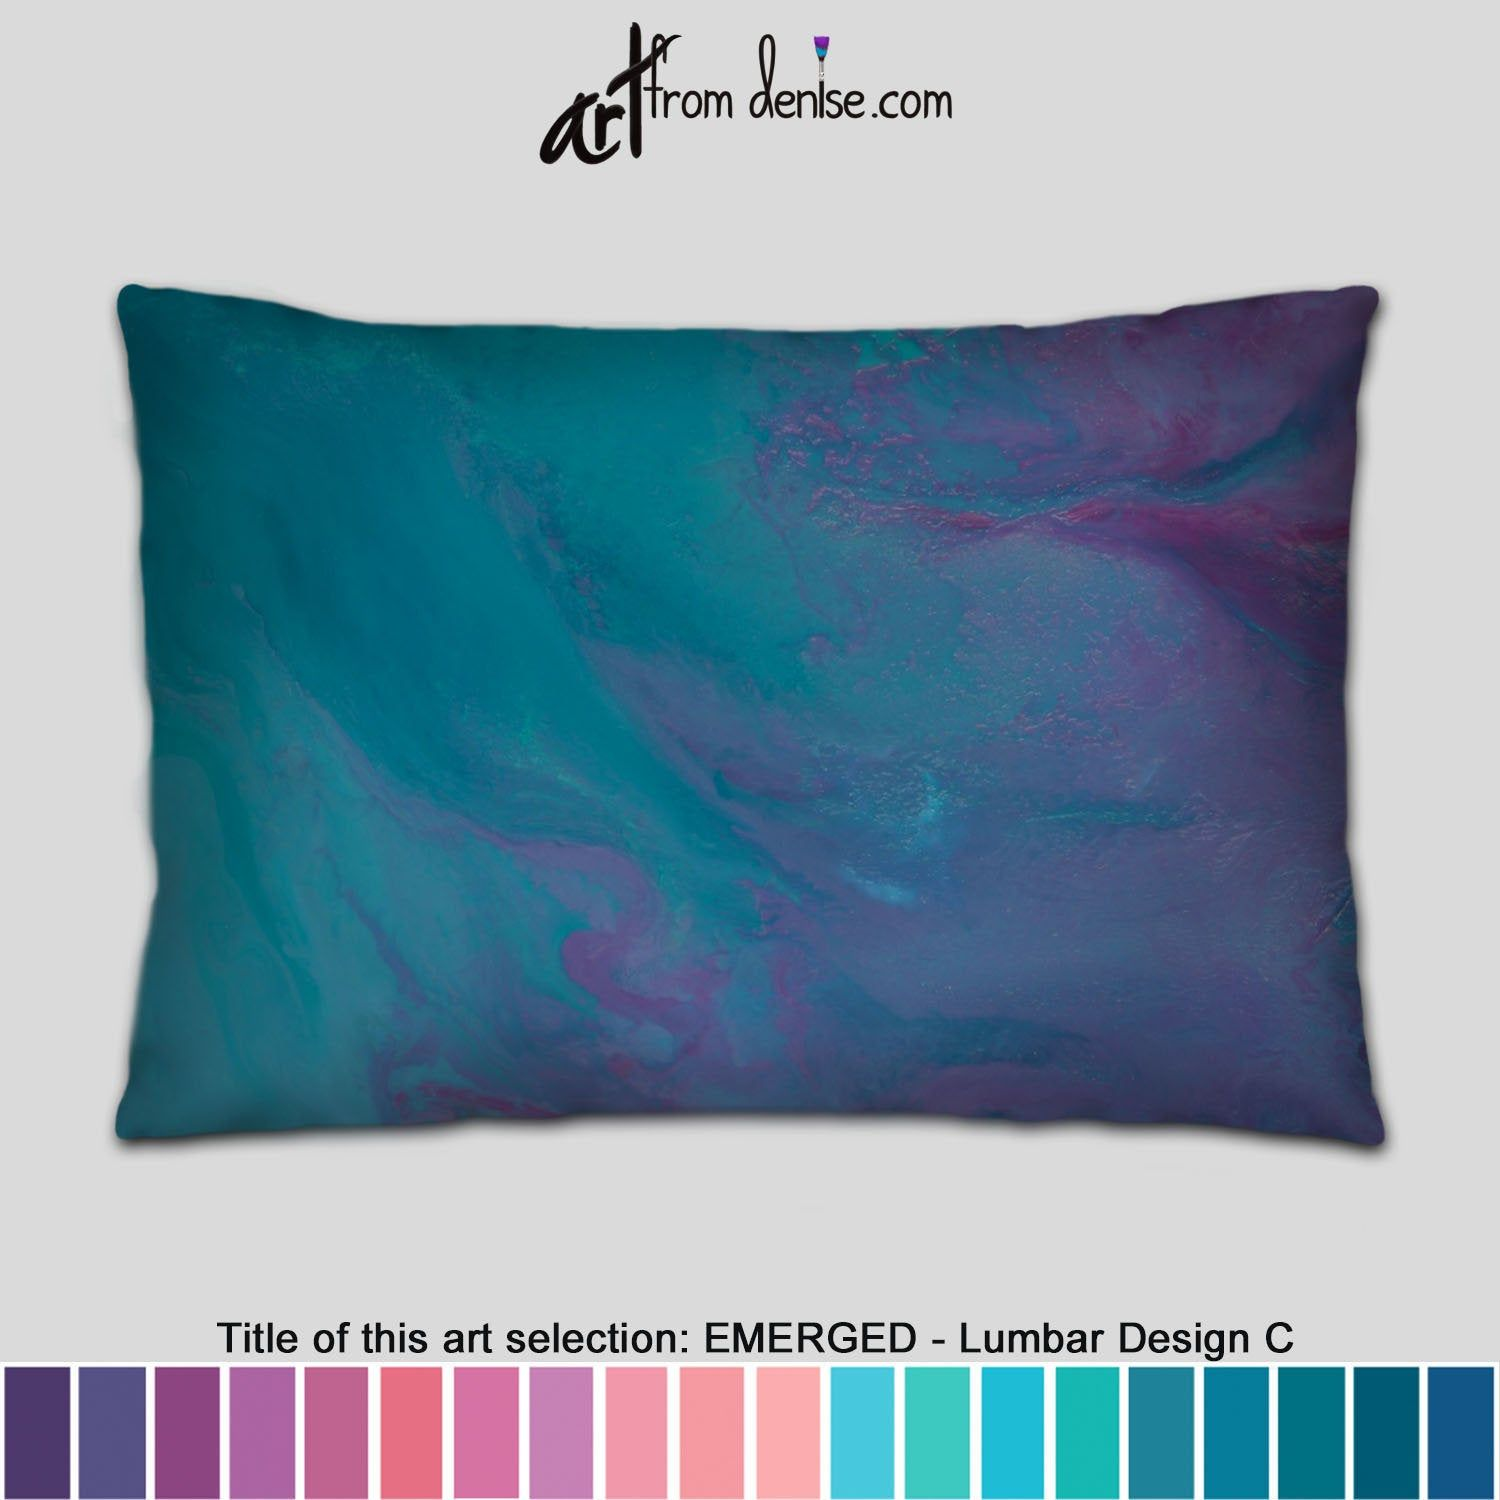 Modern Abstract Blue Lumbar Pillows Turquoise And Purple Throw Pillows For Bed Decor Couch Pillows Sets Or Outdoor Lumbar Support In 2020 Purple Throw Pillows Throw Pillows Bed Couch Pillow Sets